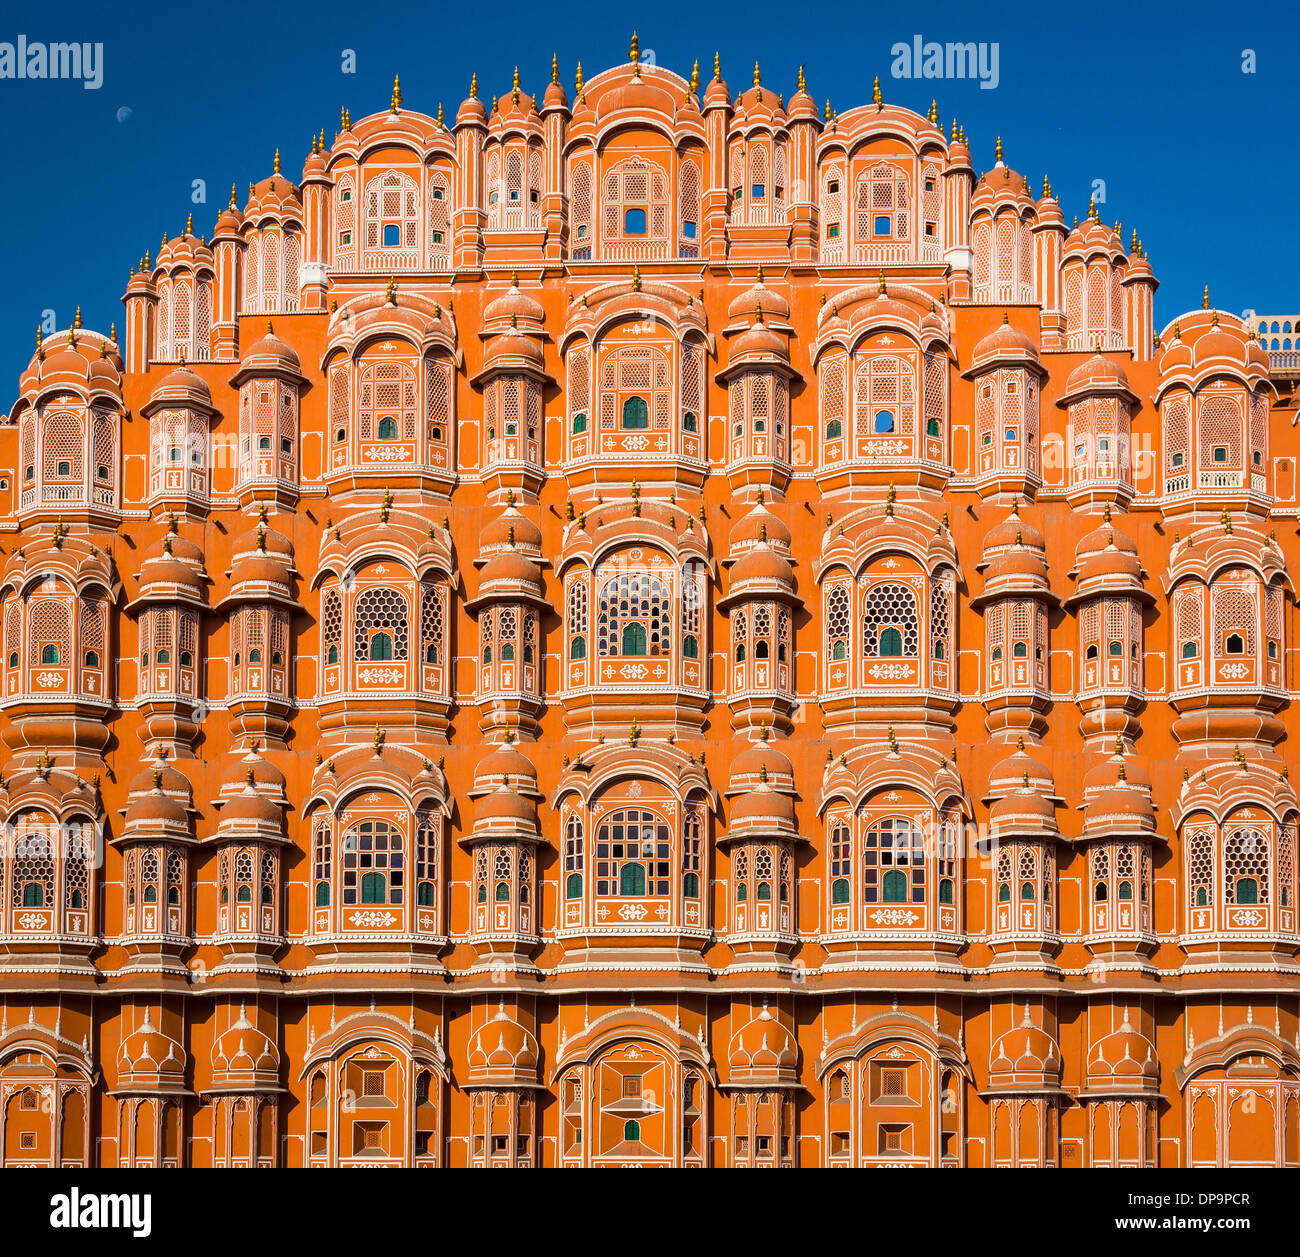 "Hawa Mahal ('Palace of Winds' or ""Palace of the Breeze""), is a palace in Jaipur, India - Stock Image"